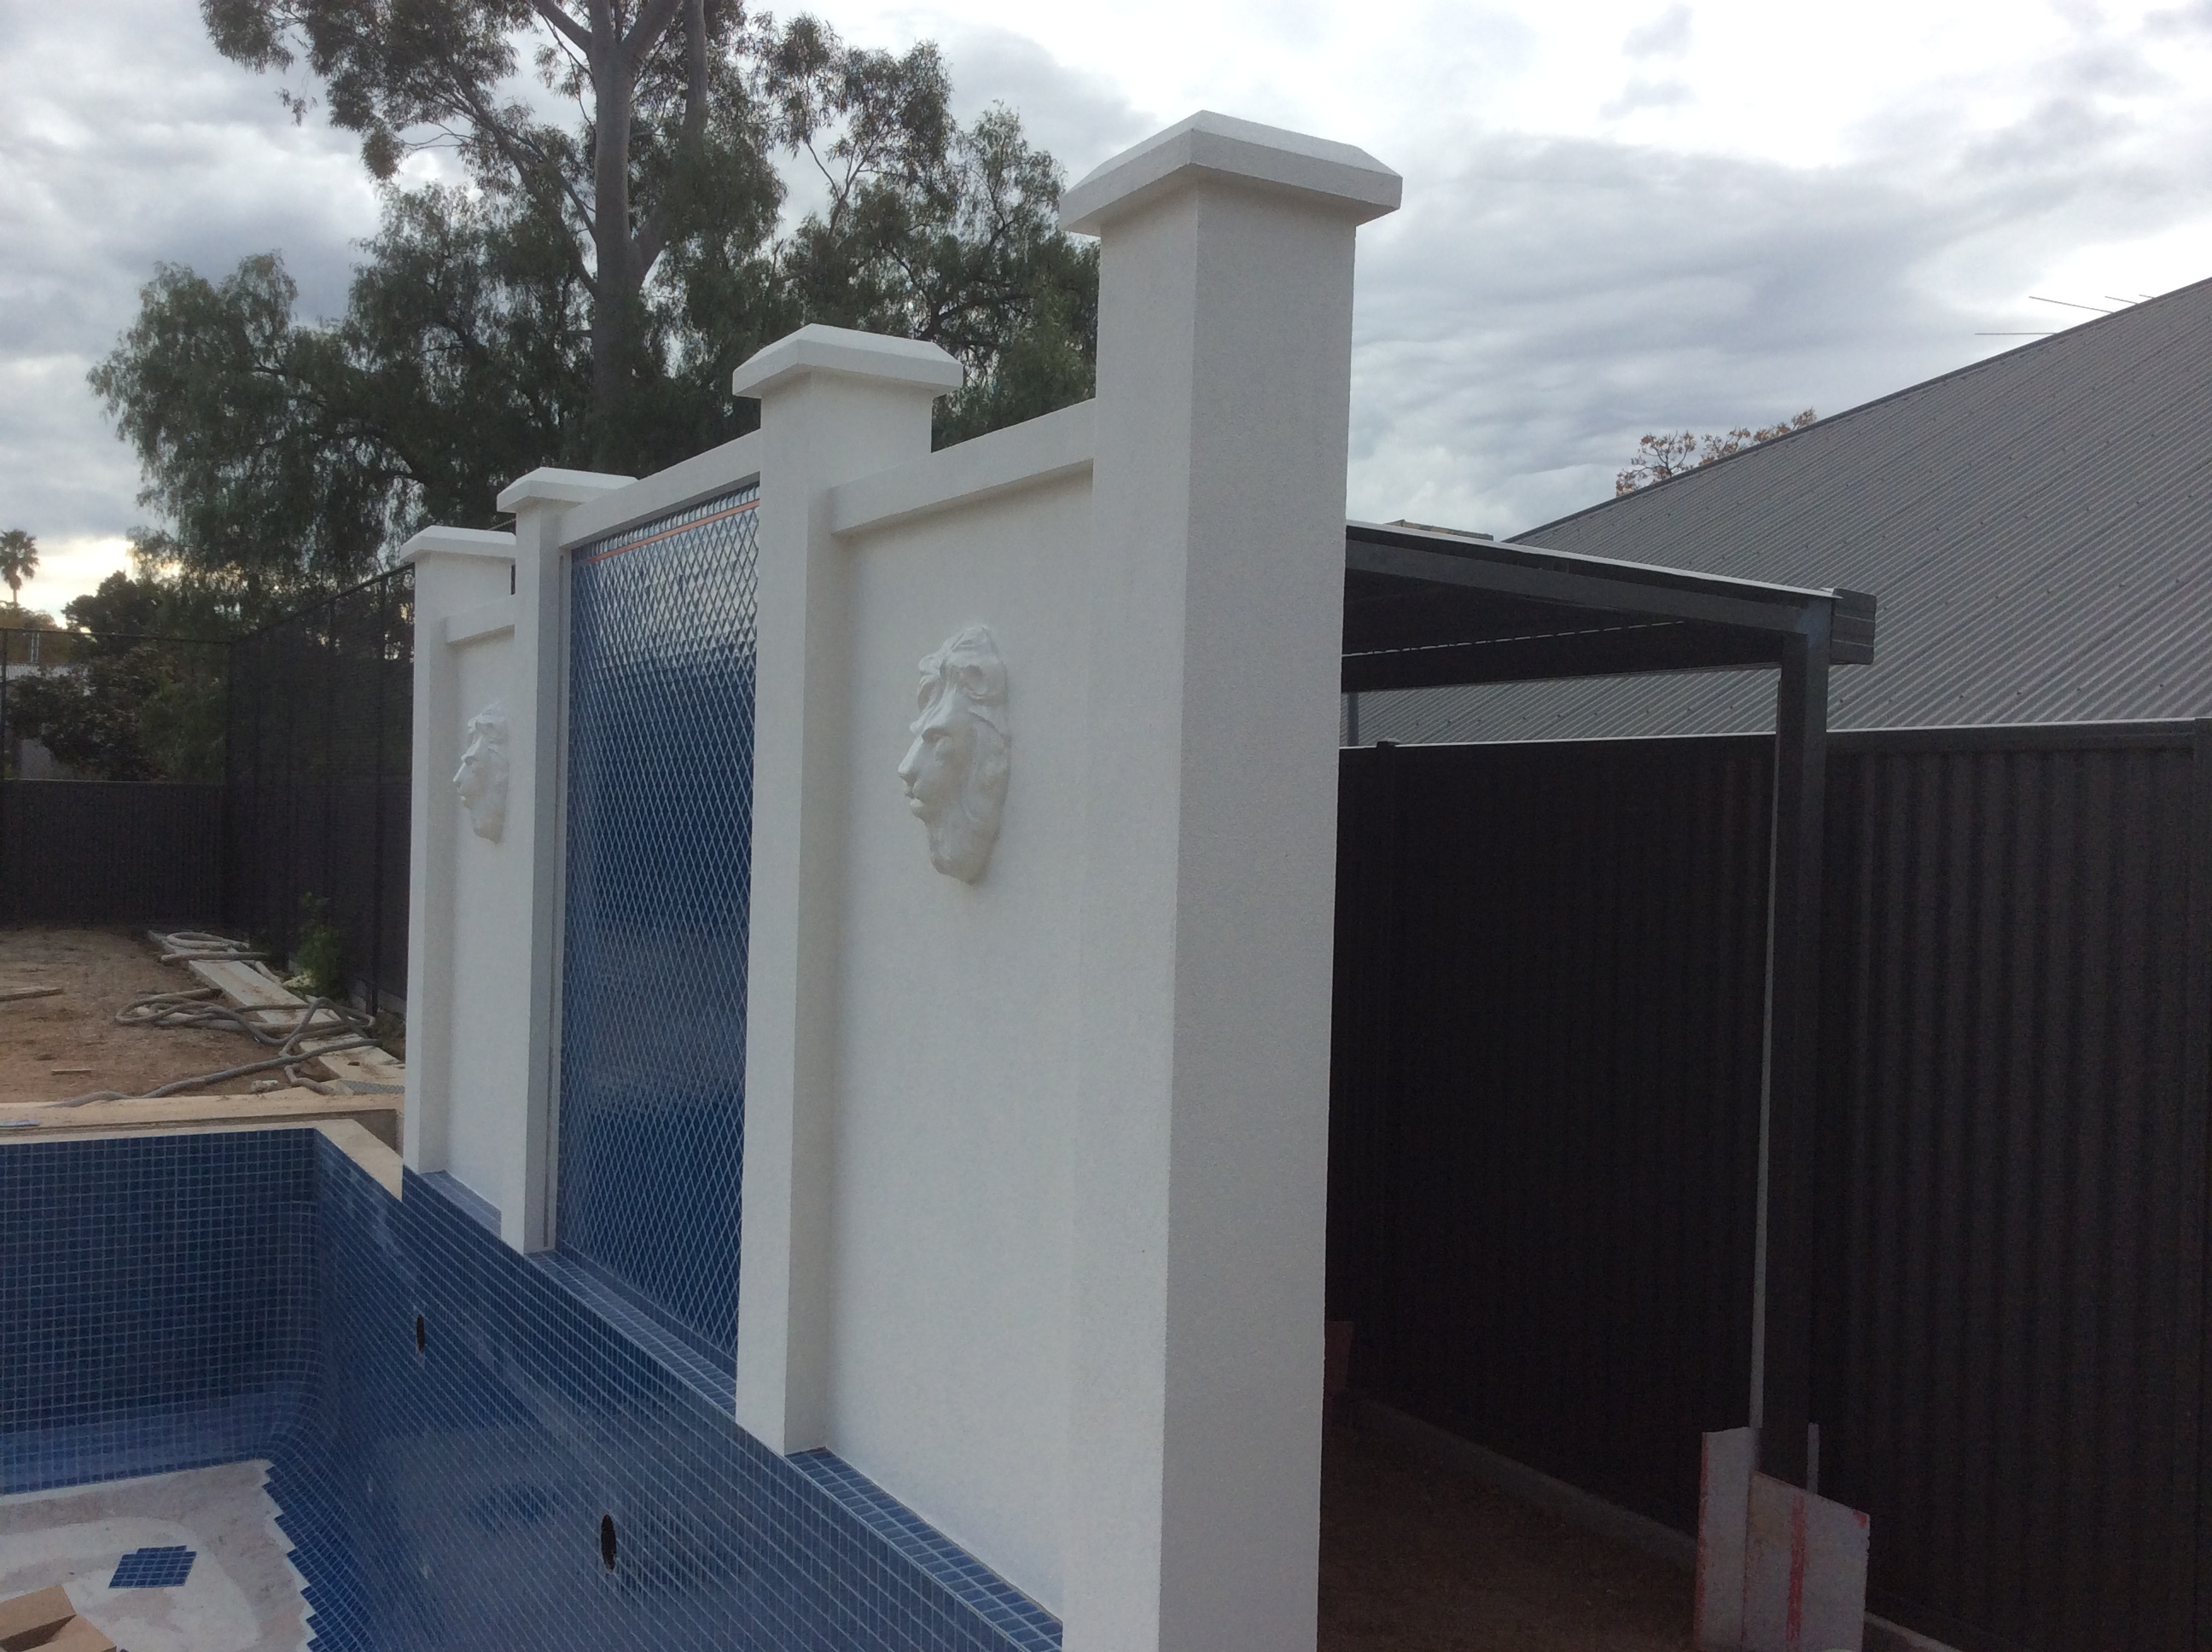 Wall capping and pillar caps provided a great finish